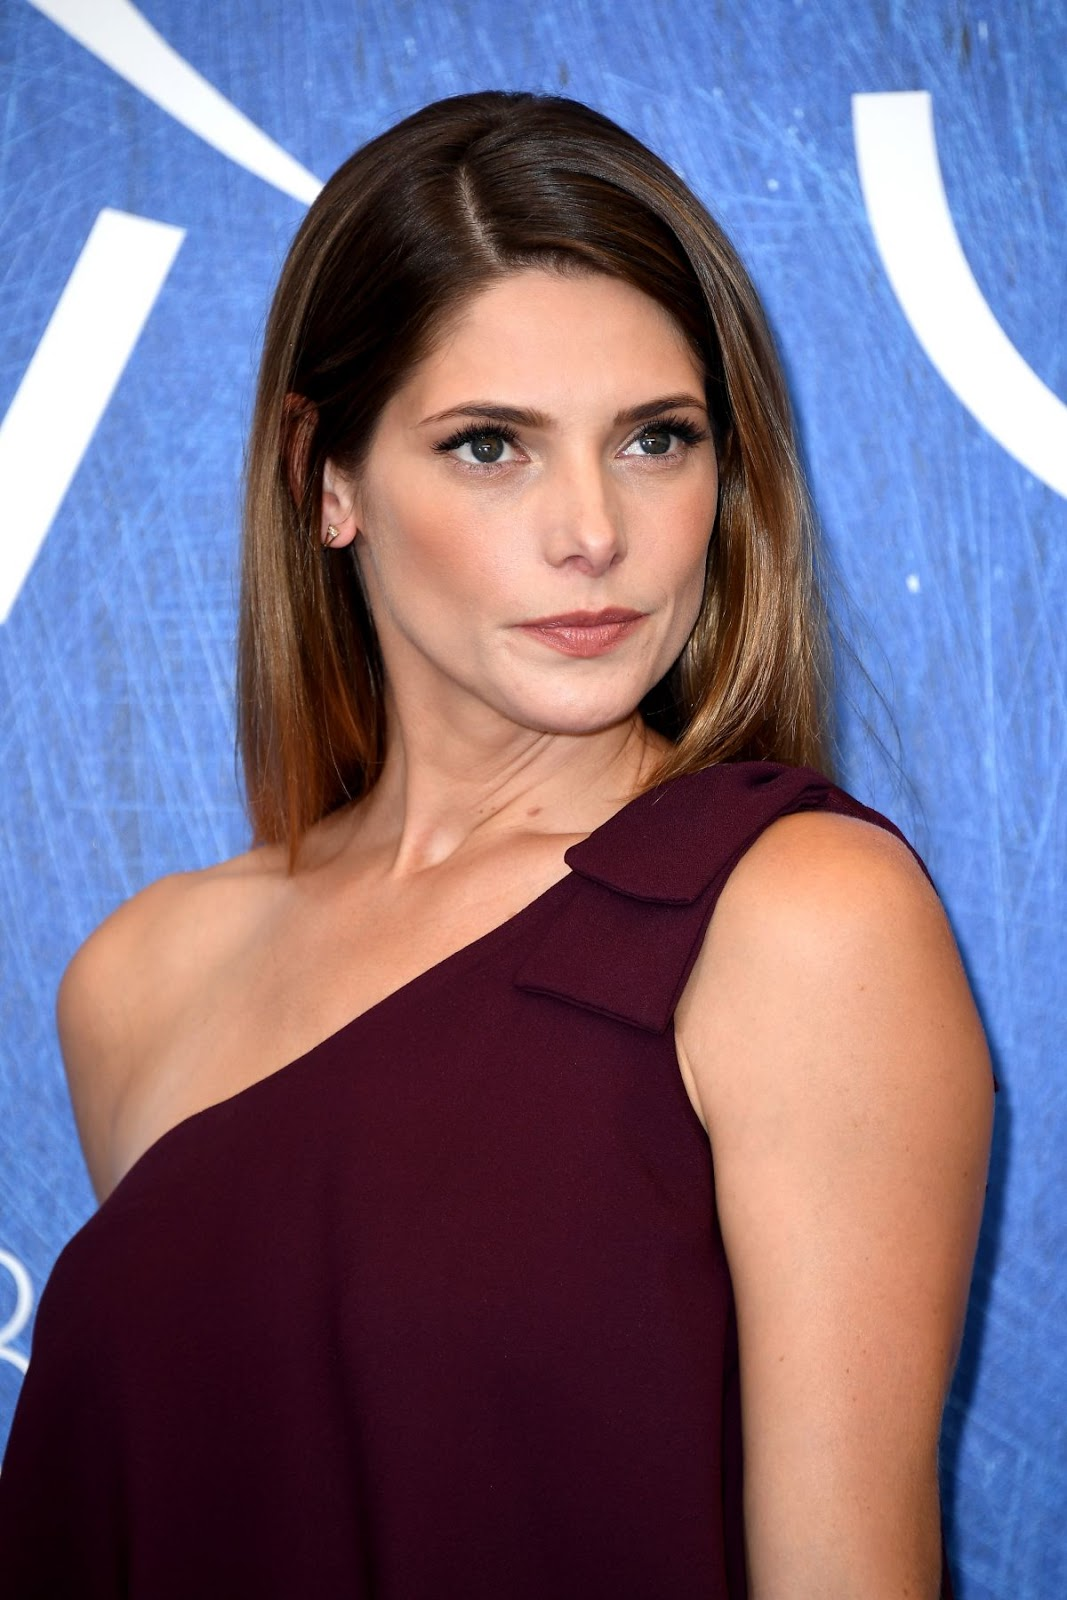 Full HQ Photos of 'Max & Me' actress Ashley Greene At In Dubious Battle Photocall At 73rd Venice Film Festival